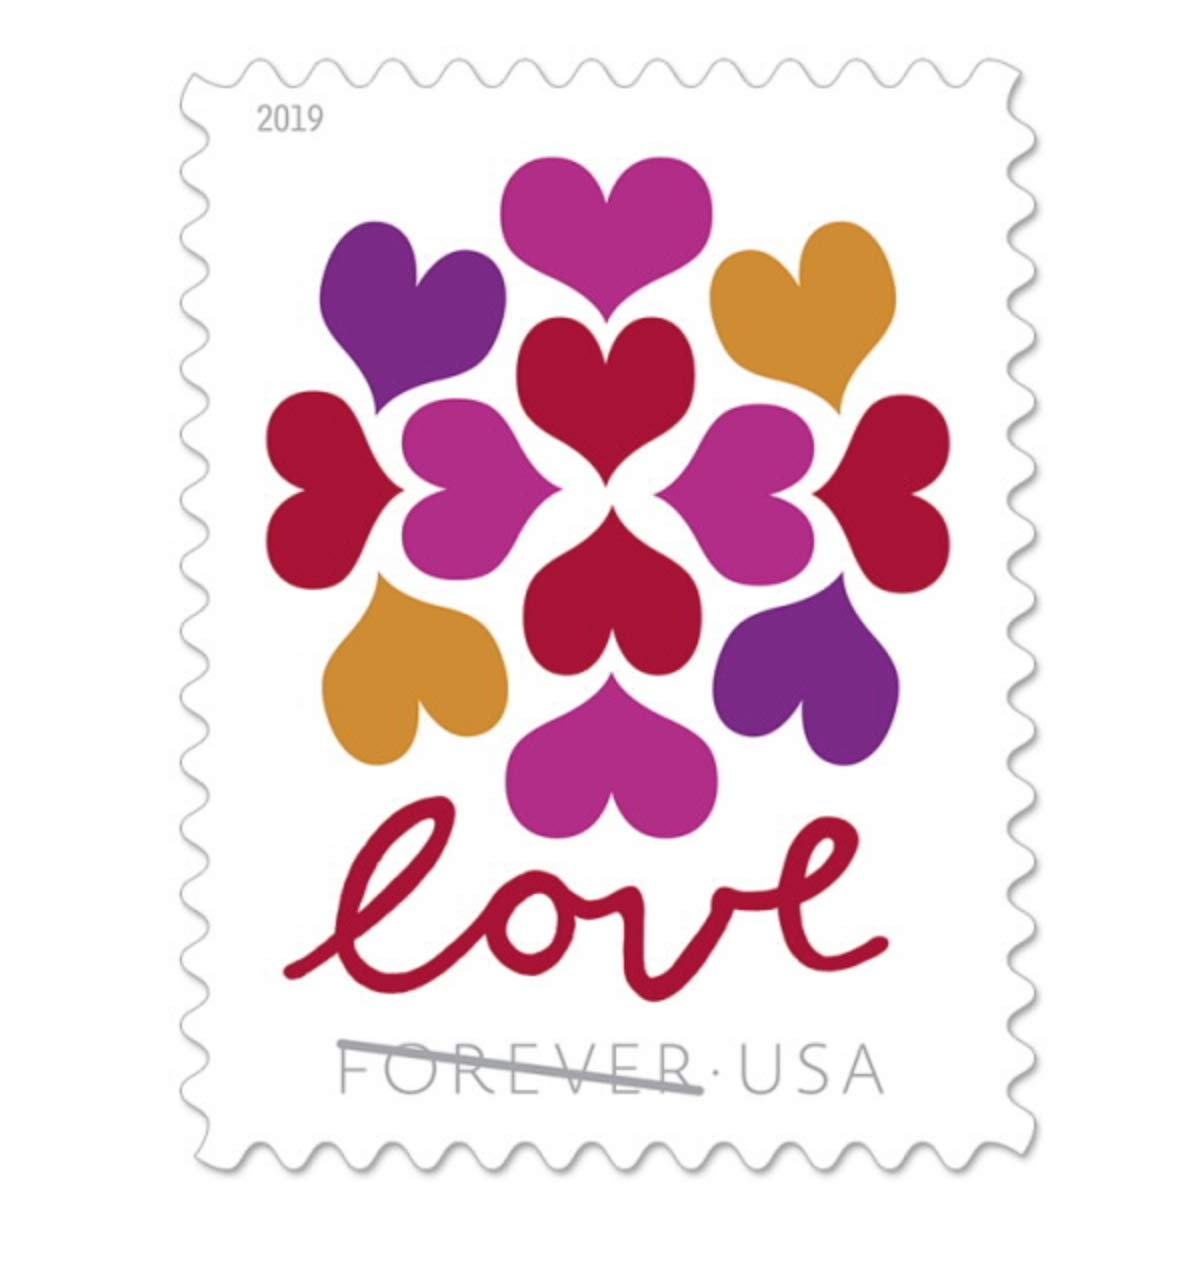 USPS Hearts Blossom Love Forever Stamps - Wedding, Celebration, Graduation (5 Sheets, 100 Stamps) 2019